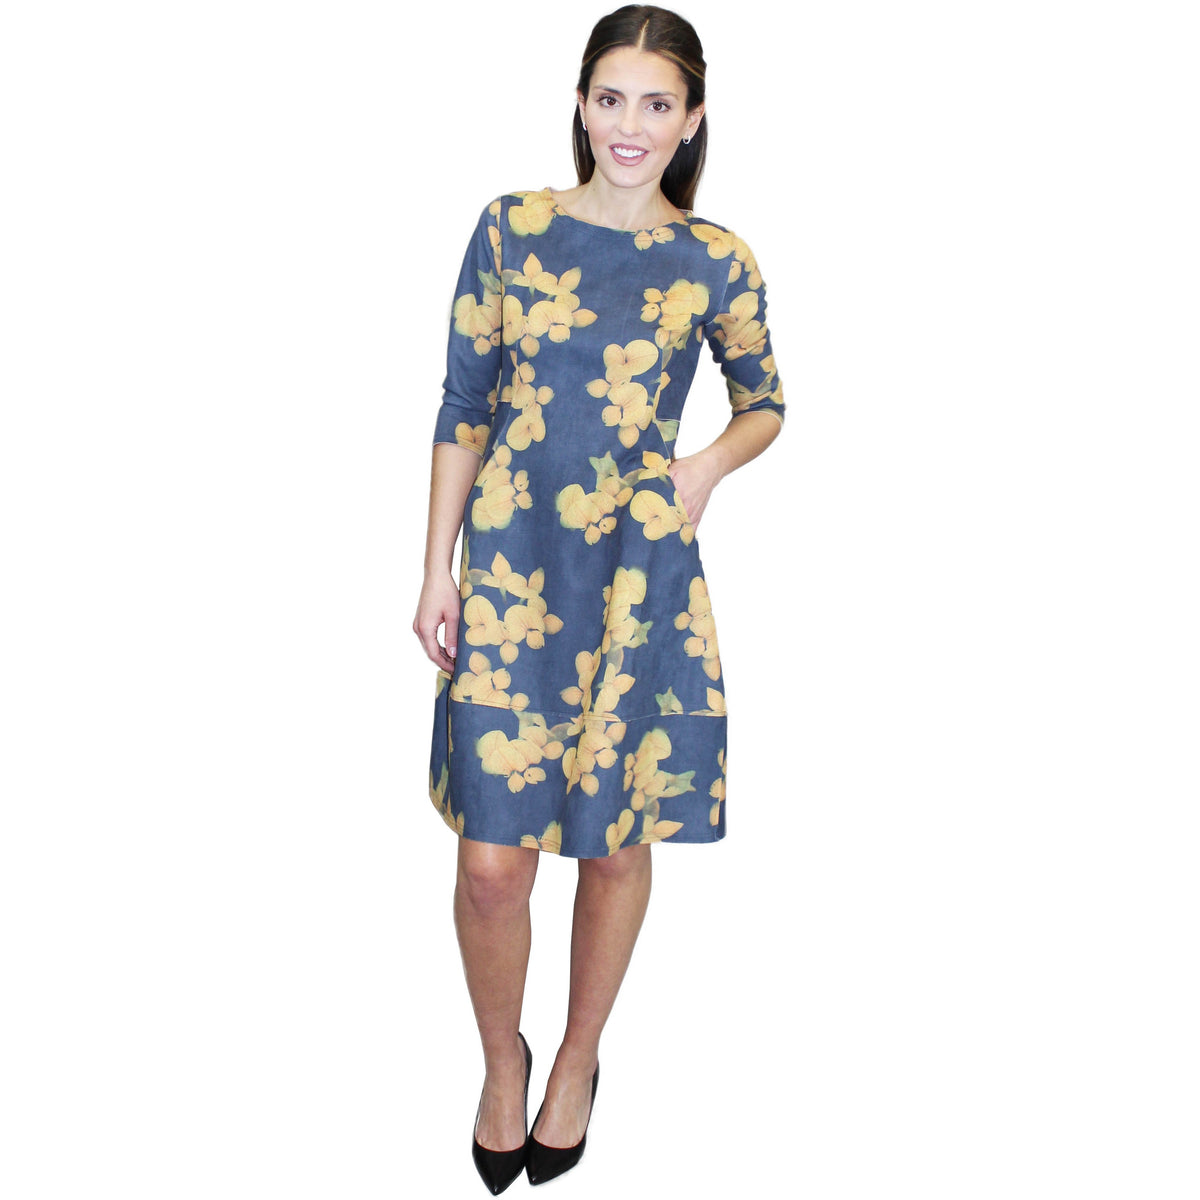 Long Sleeve Floral Crinkle Dress with Pockets - Navy